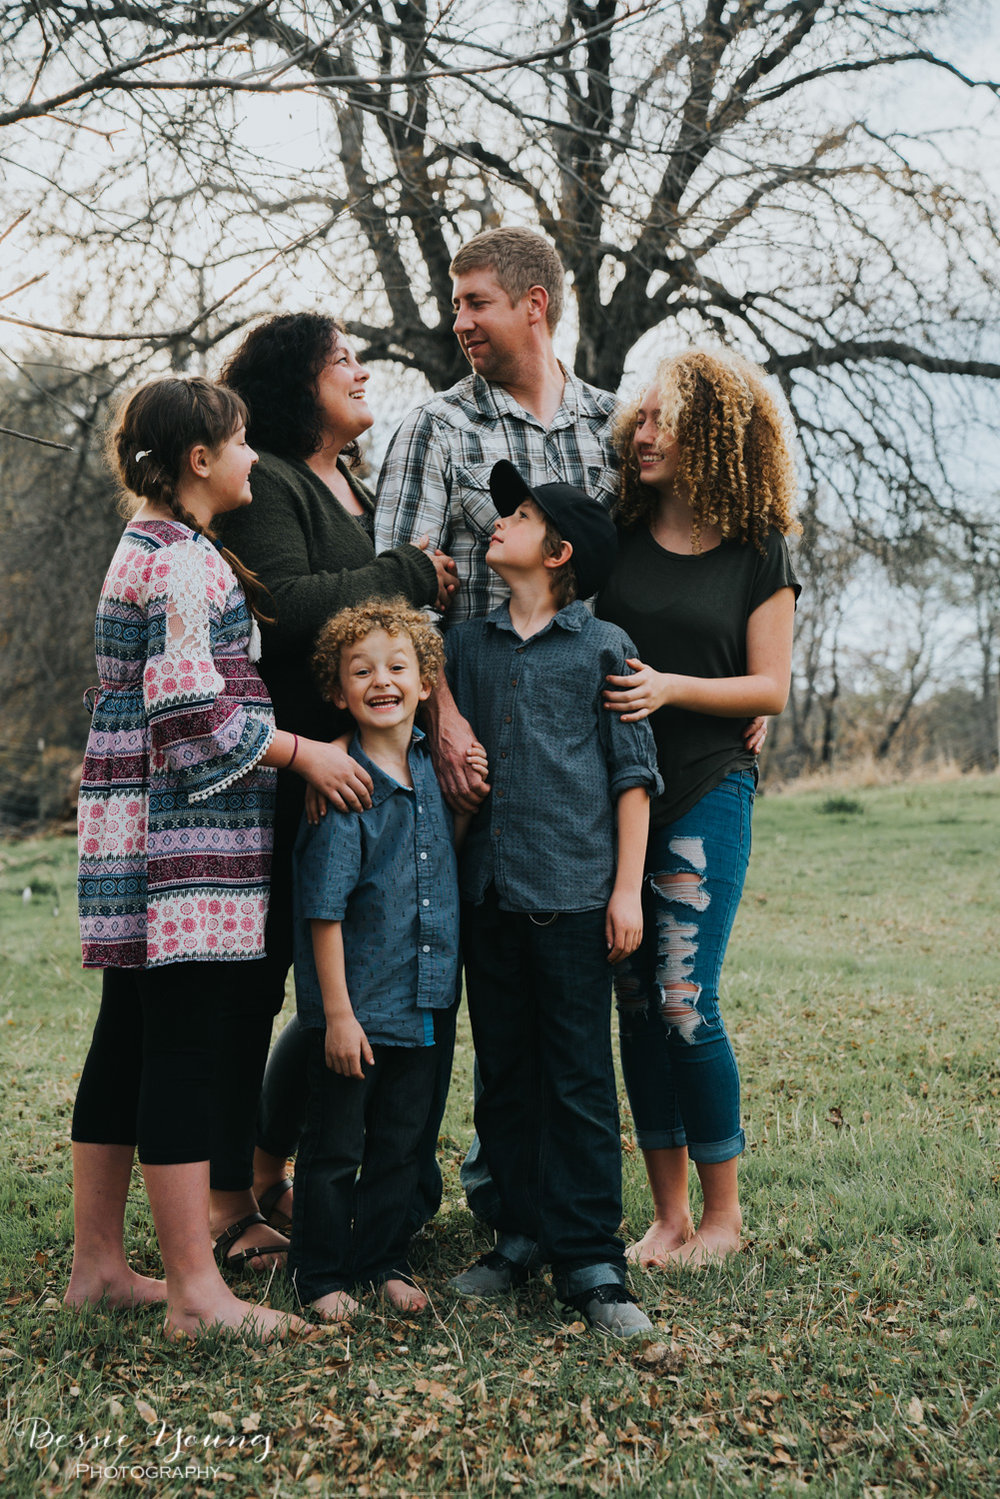 Sonora Family Portraits - Sonora Photographer Bessie Young - Family of 6 posing idea